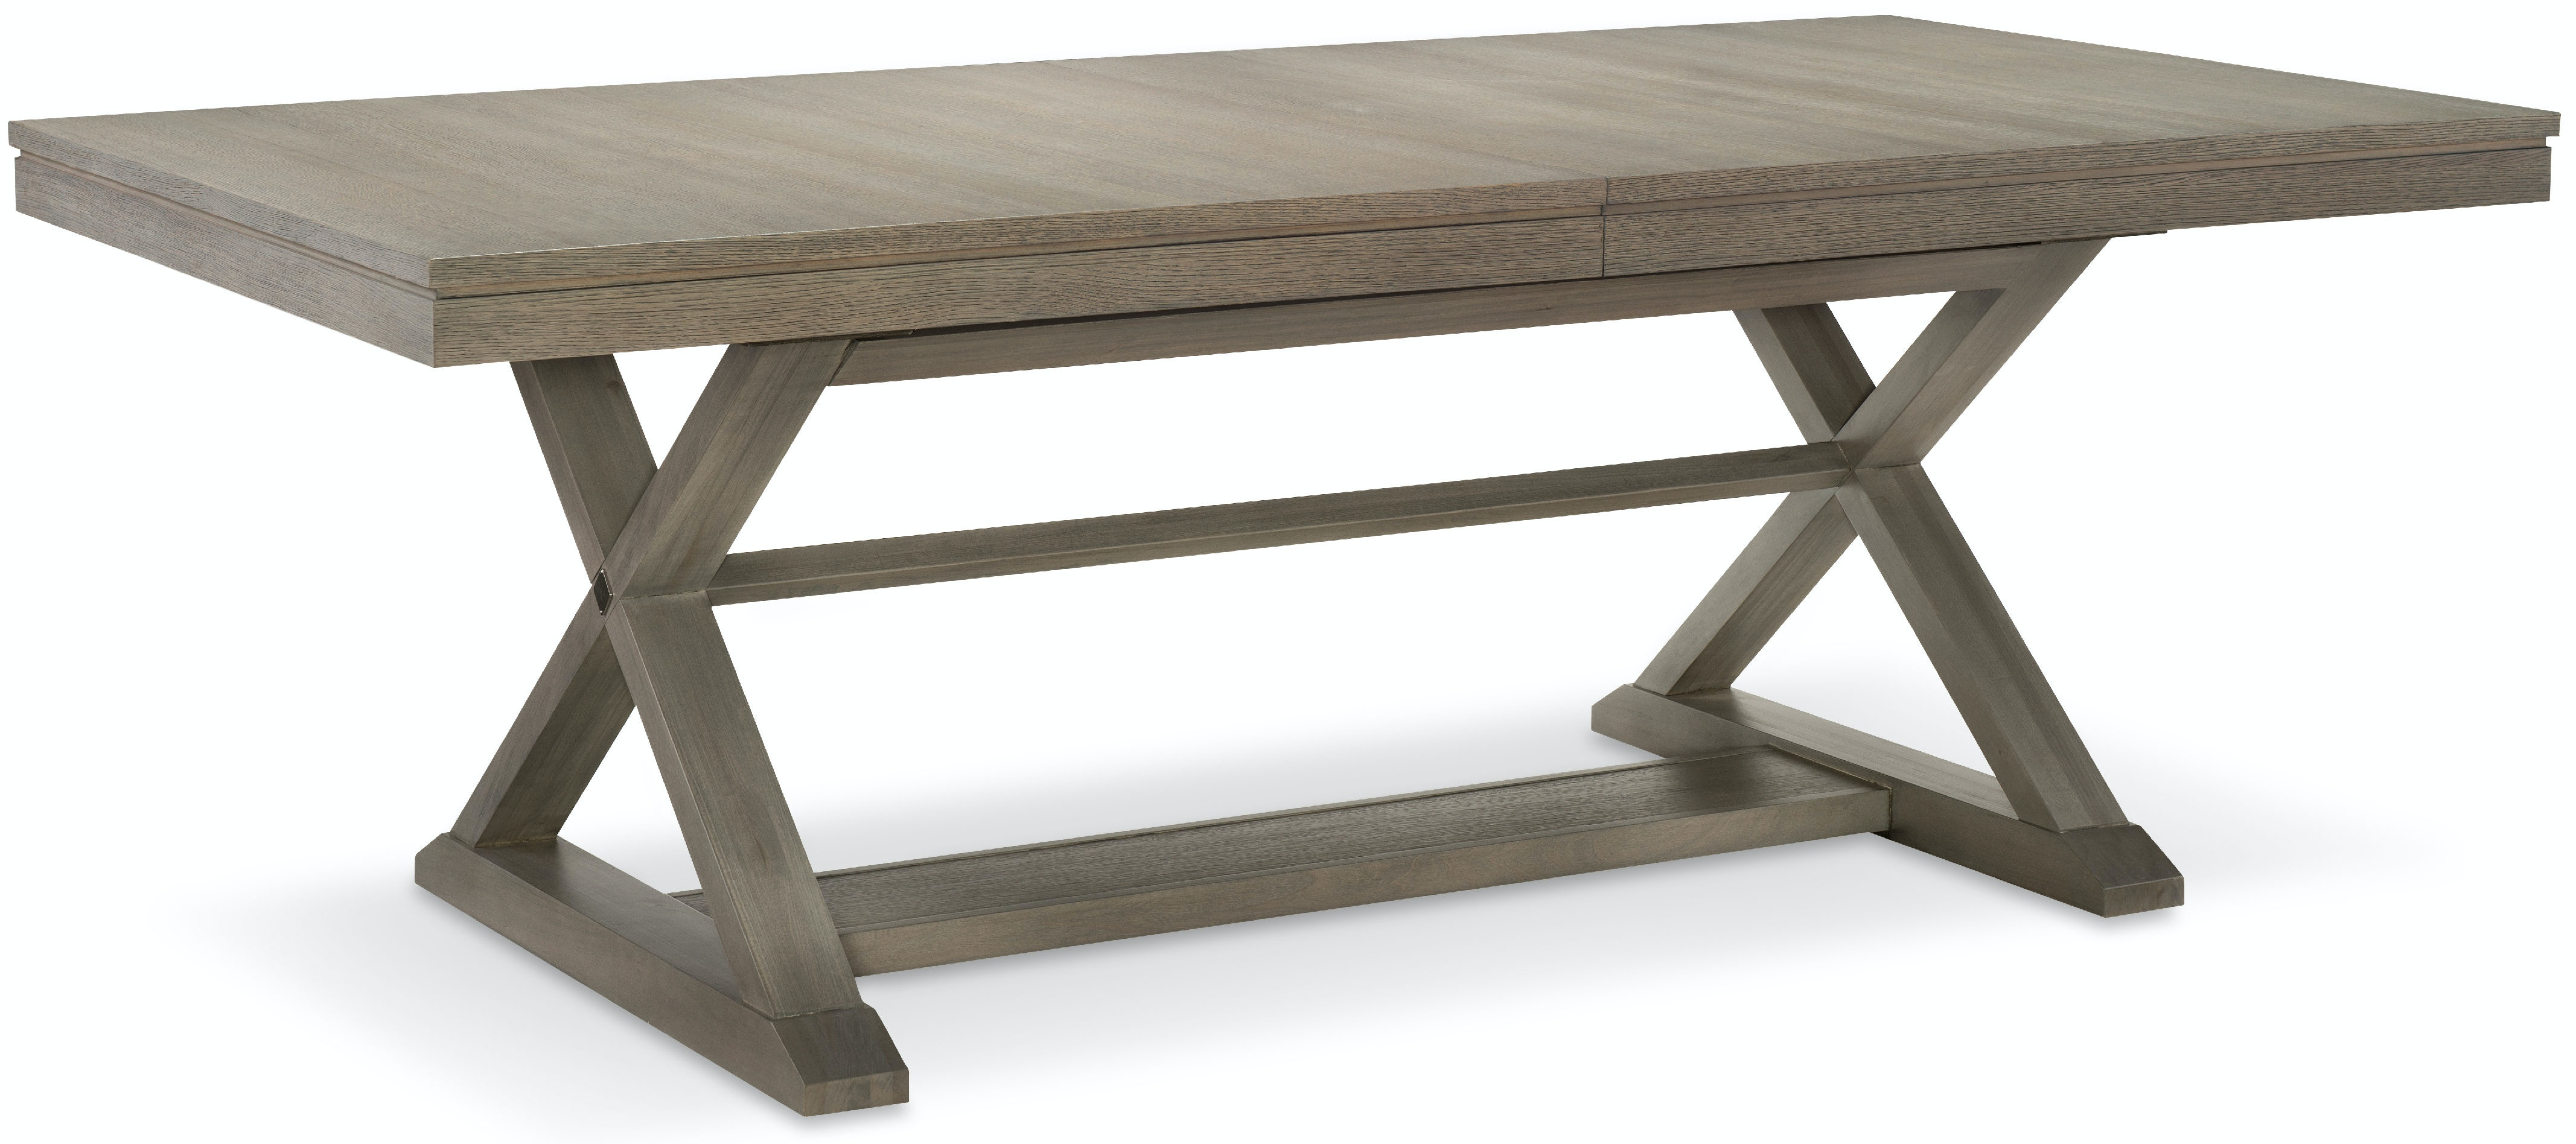 Delicieux Rachael Ray Home   Highline Trestle Table